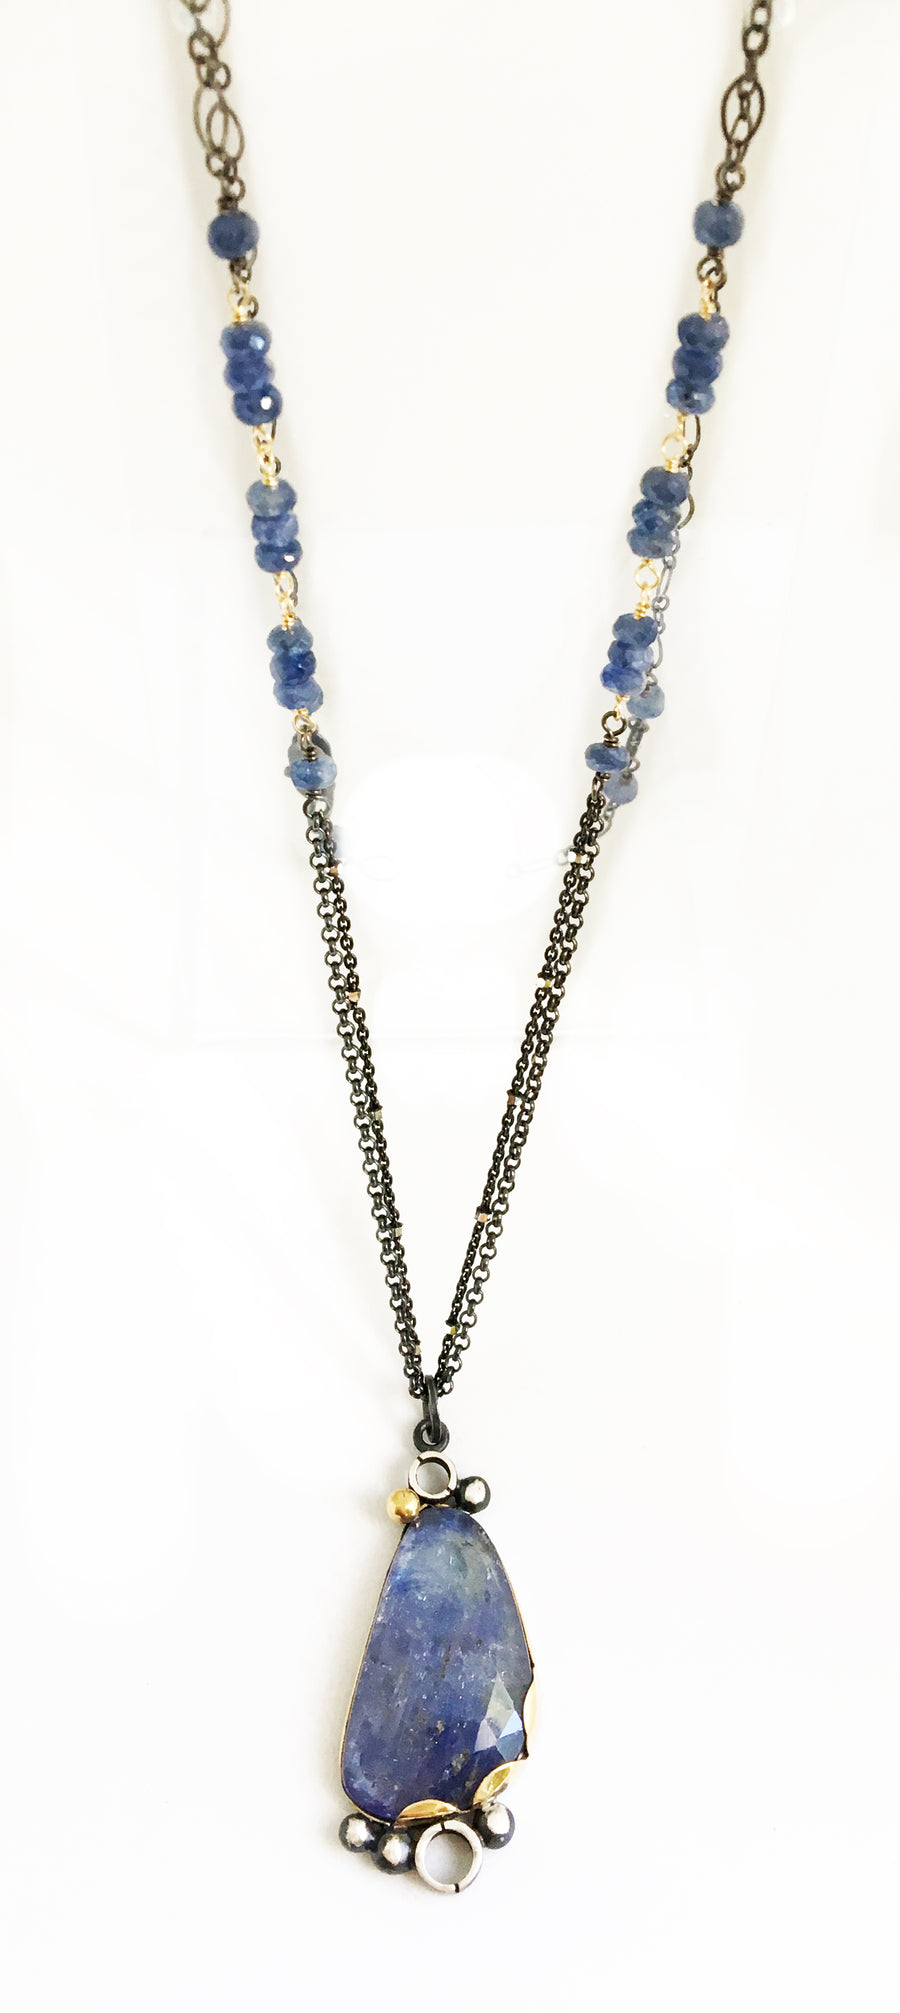 tanzanite necklace - blue - 22k gold and sterling silver